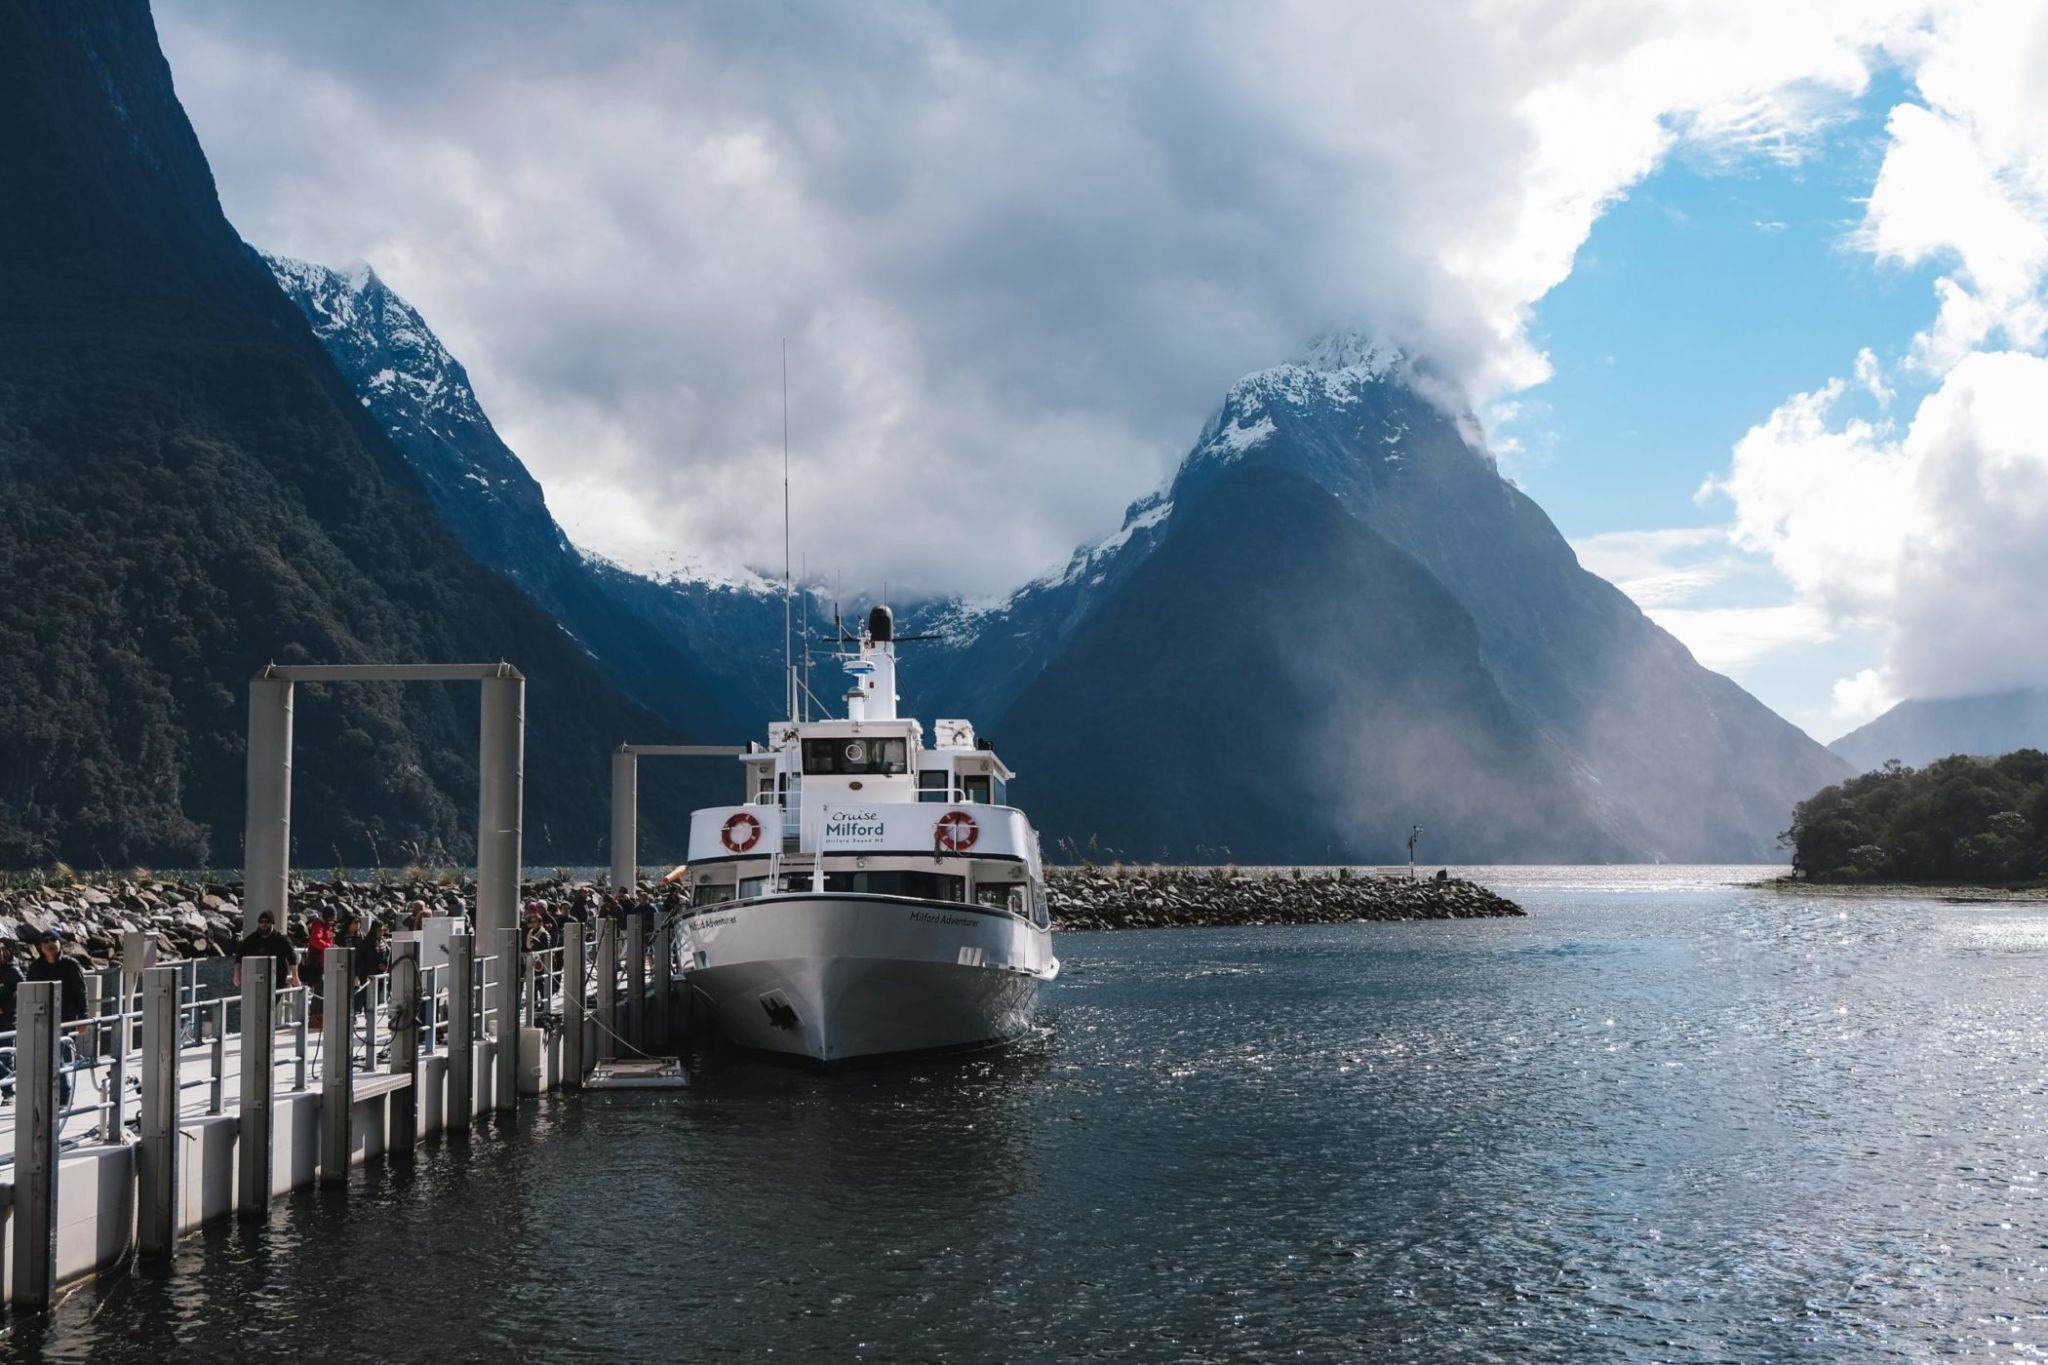 Booking a cruise is the best way to experience Milford Sound